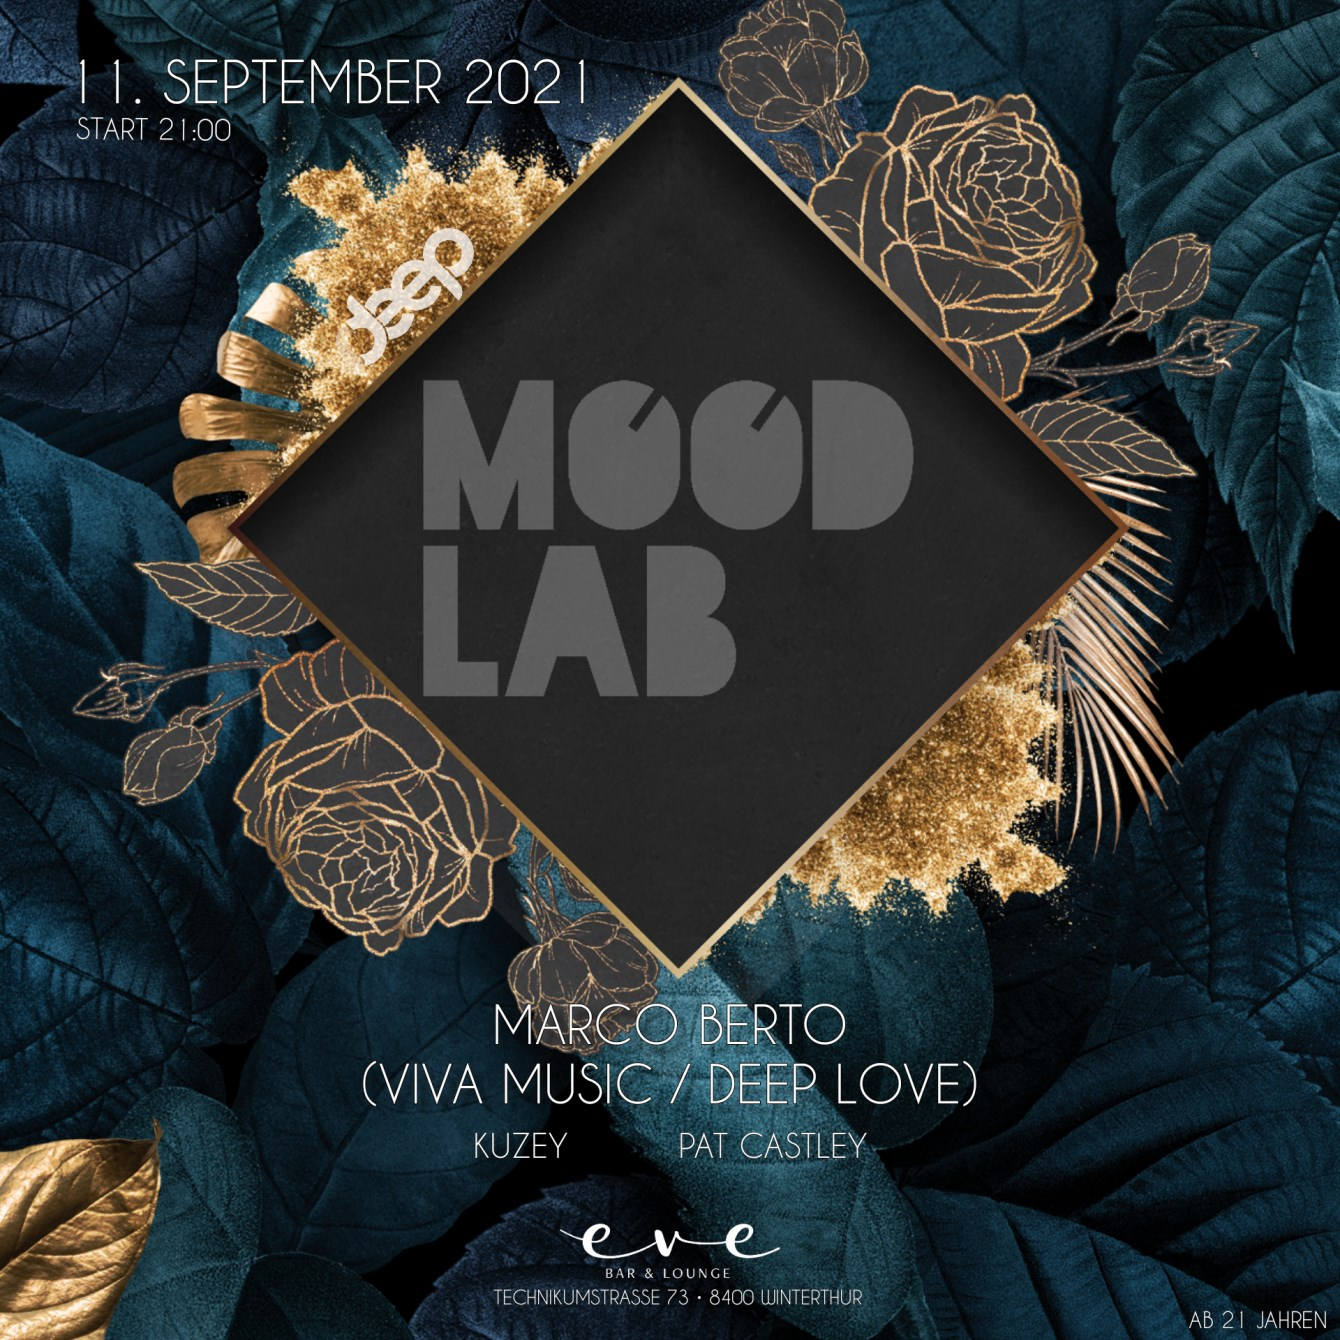 Mood Lab. at Eve Lounge Winterthur - Marco Berto - Flyer front